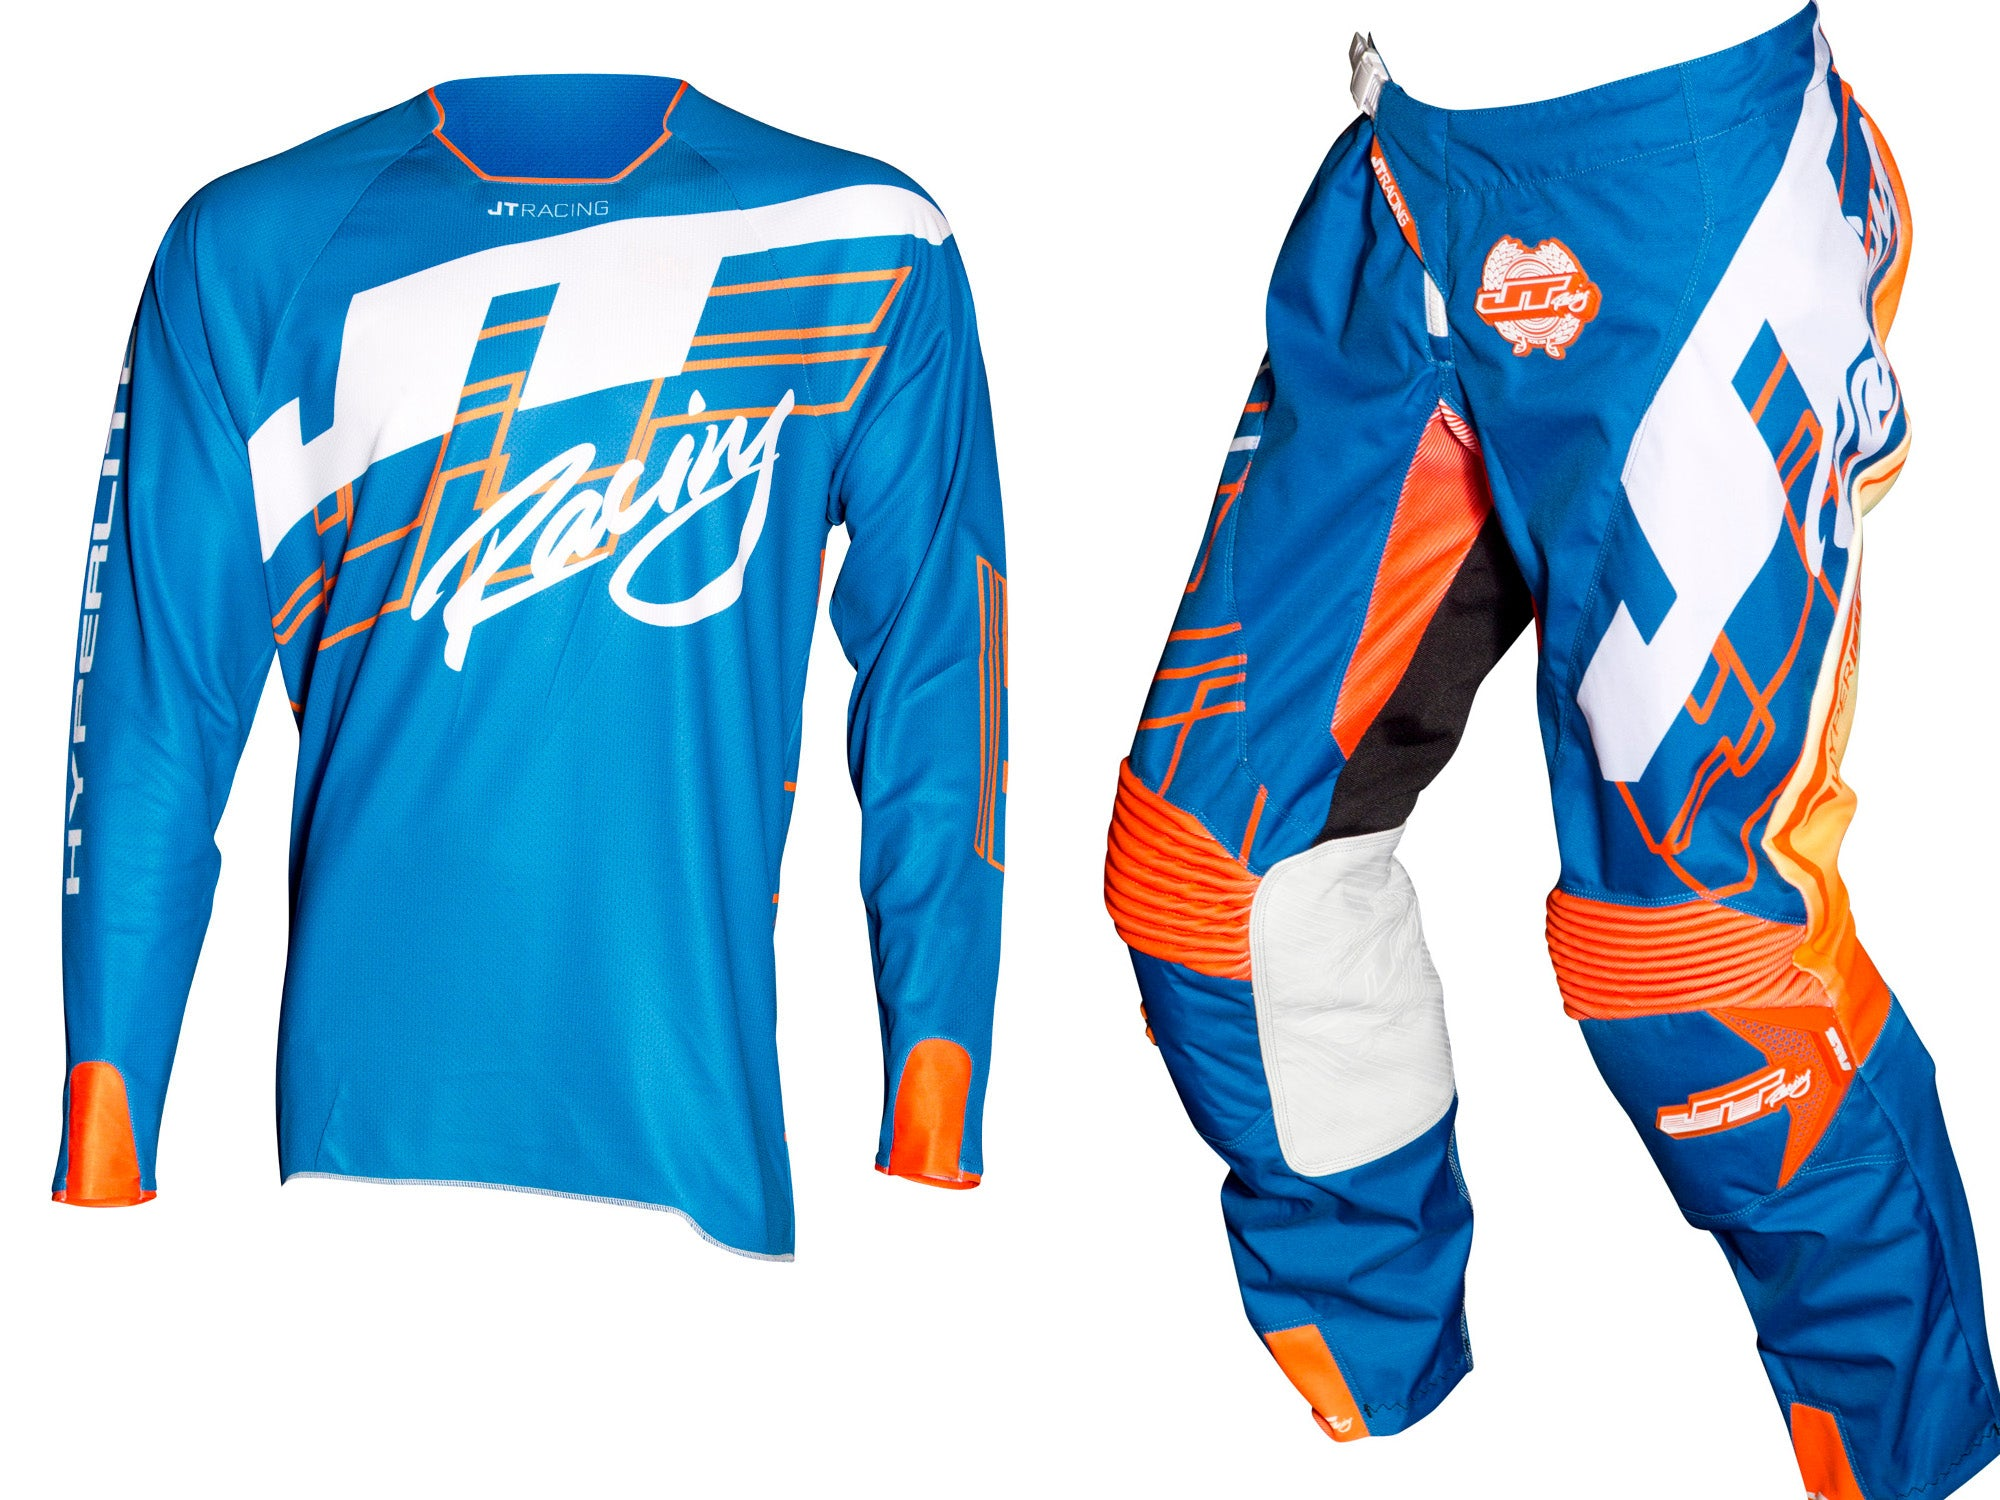 JT Racing USA-Hyperlite Shuffle Jersey, Blue/Fluro Orange/White